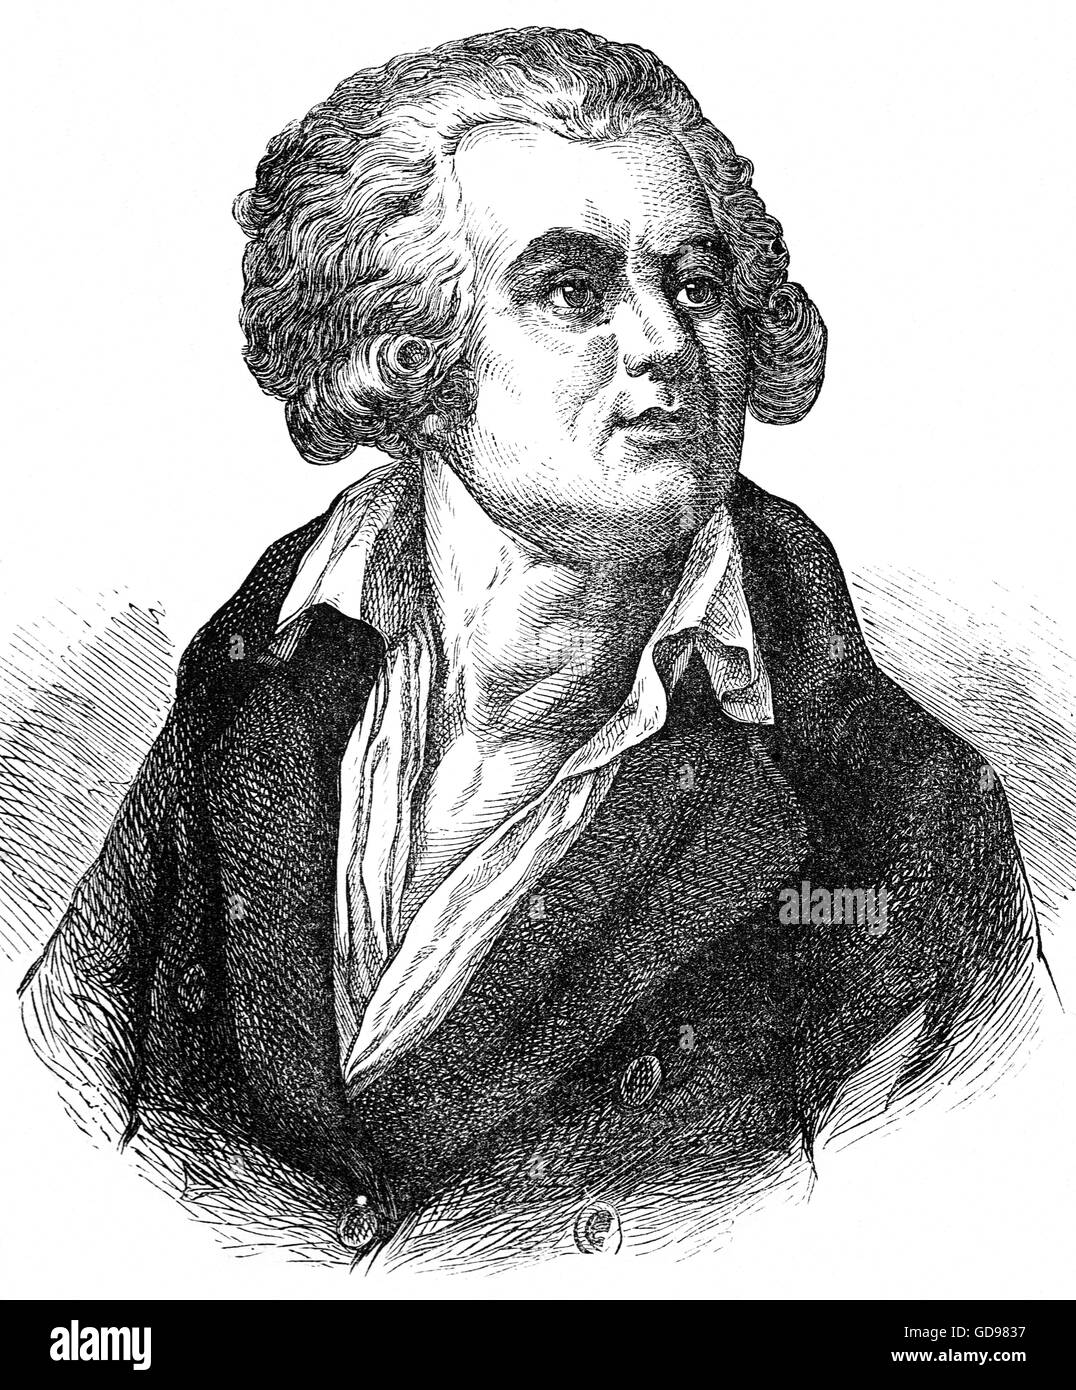 Georges Jacques Danton (1759 – 1794) was a leading figure in the early stages of the French Revolution described - Stock Image